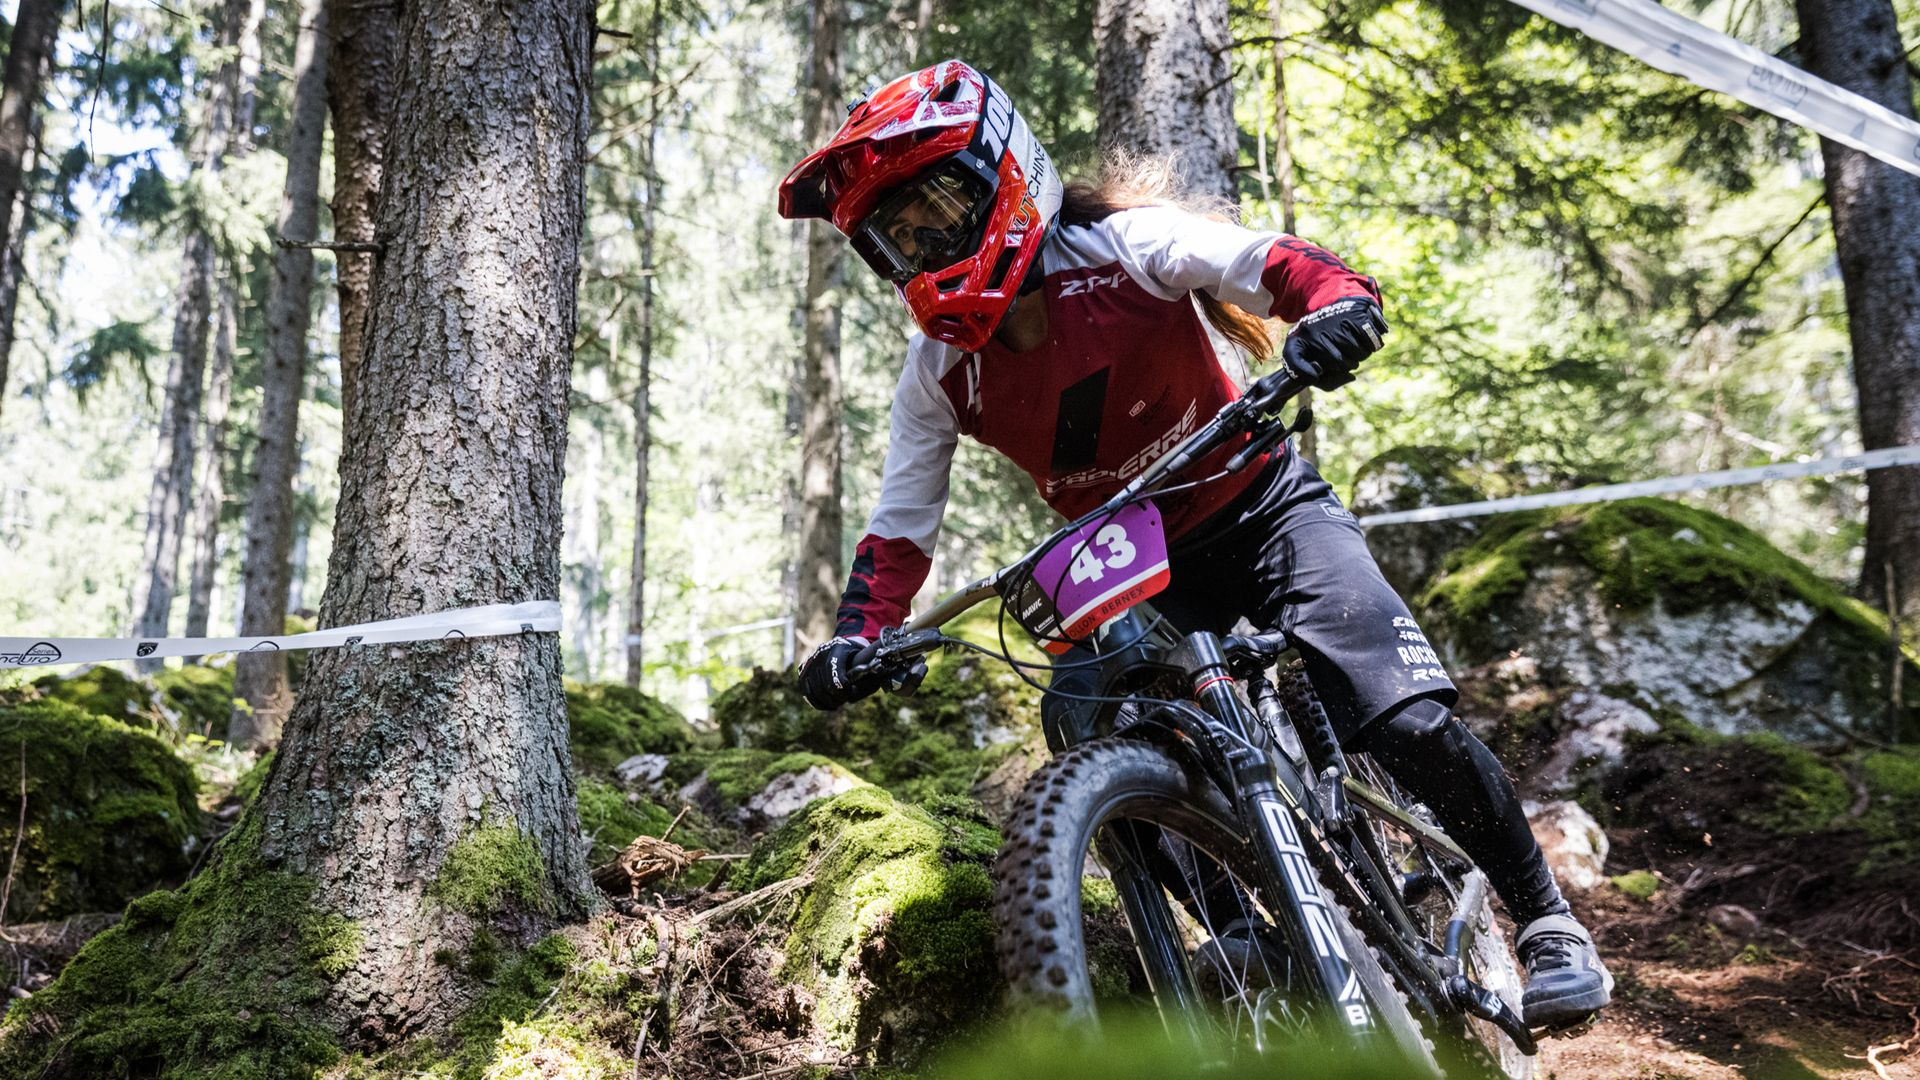 Isabeau Courdurier - 2021 enduro french champ on Spicy Team CF